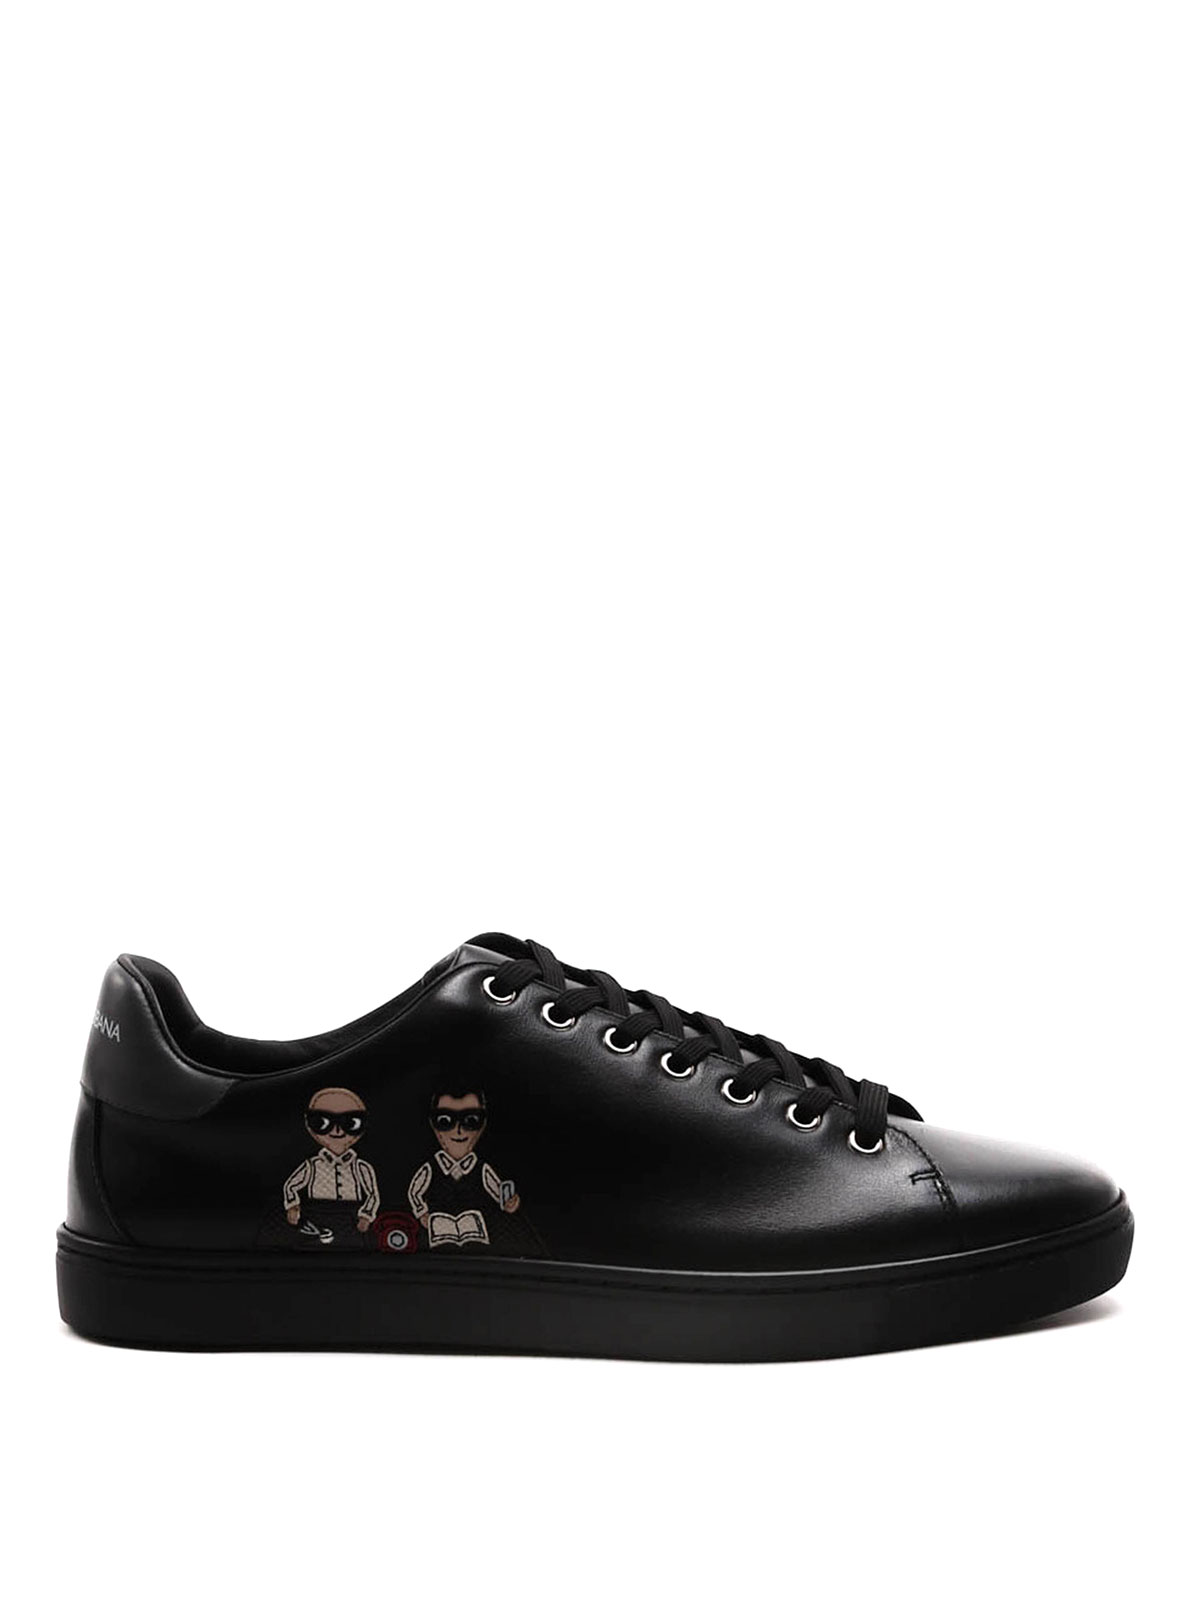 dg family patch leather sneakers by dolce gabbana. Black Bedroom Furniture Sets. Home Design Ideas